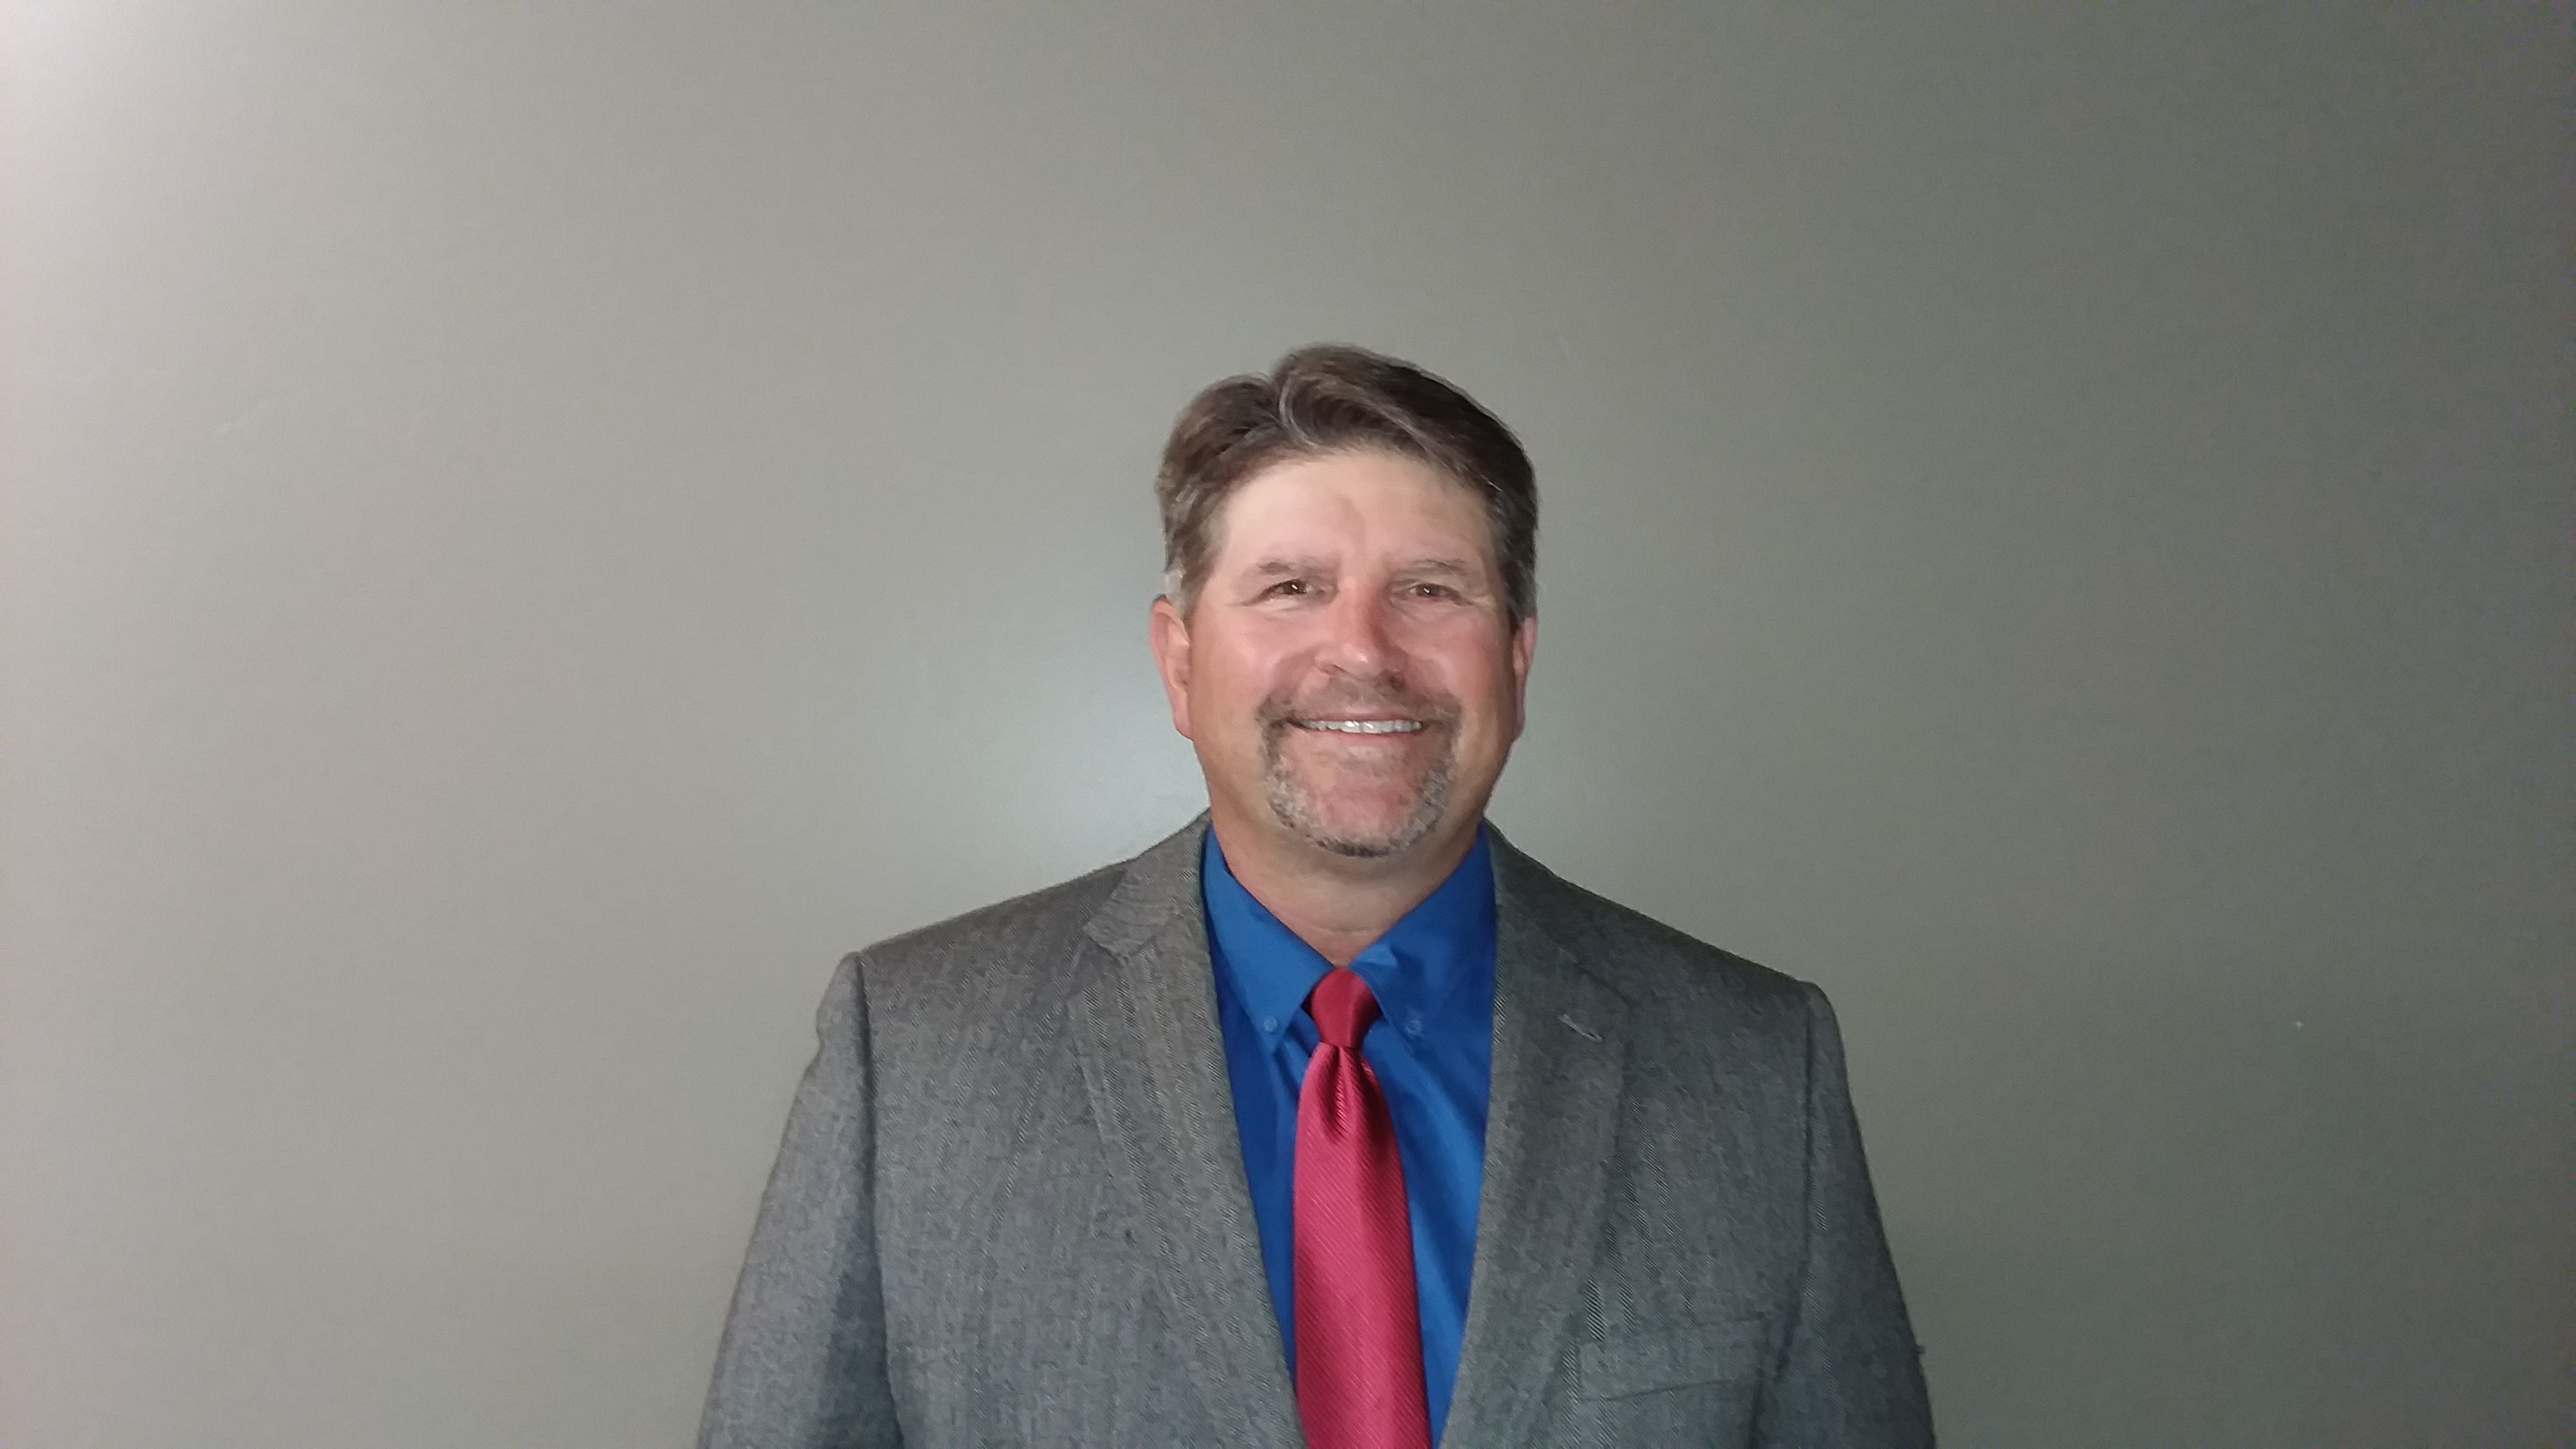 Trestles Construction Solutions Welcomes Vance Manning as Senior Construction Manager